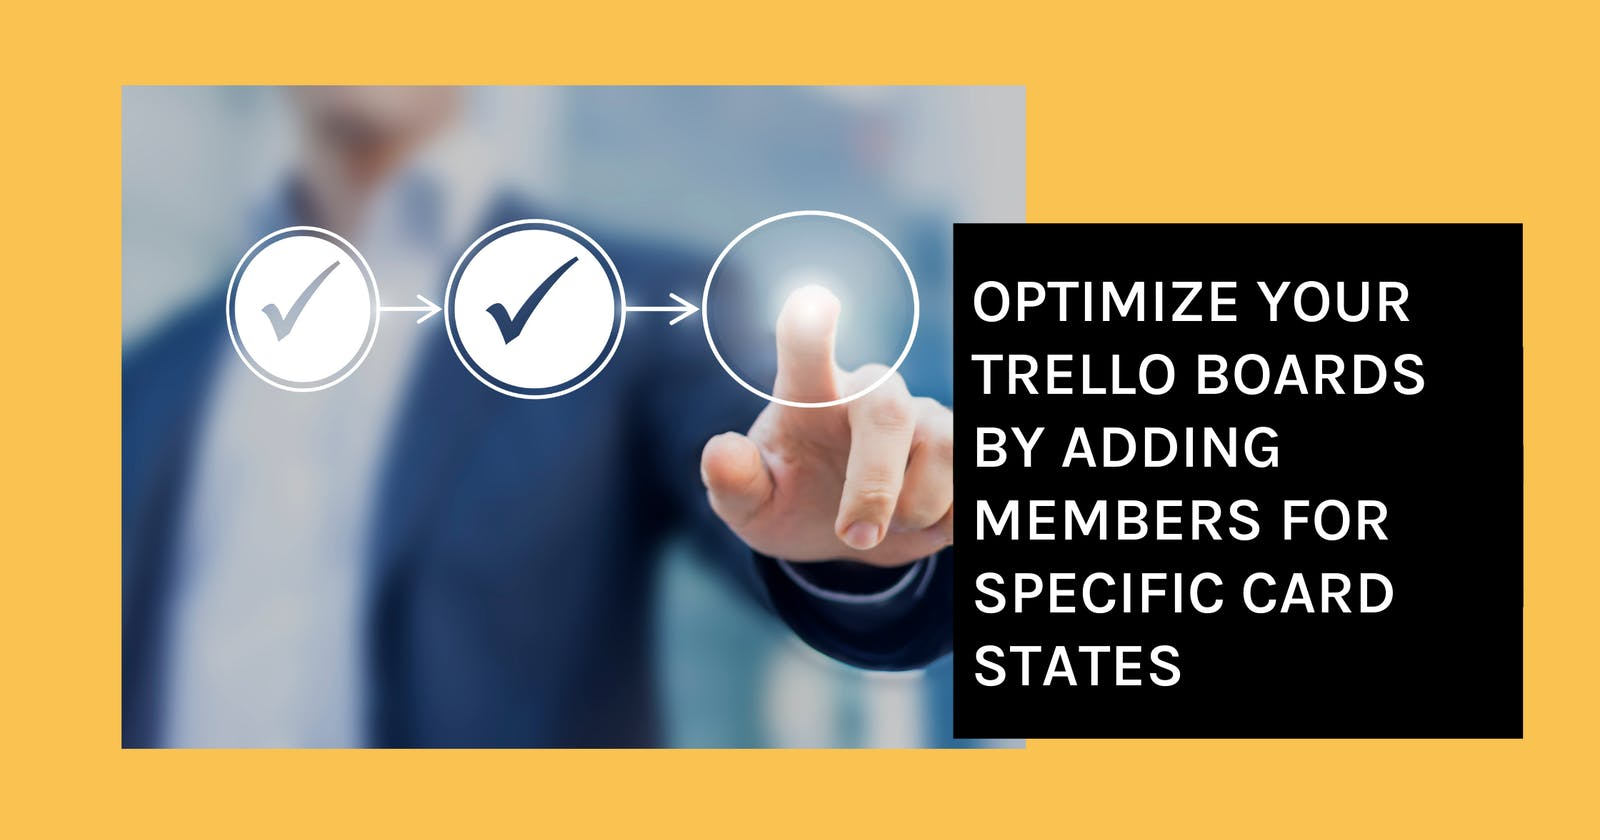 Optimize Your Trello Boards By Adding Members For Specific Card States